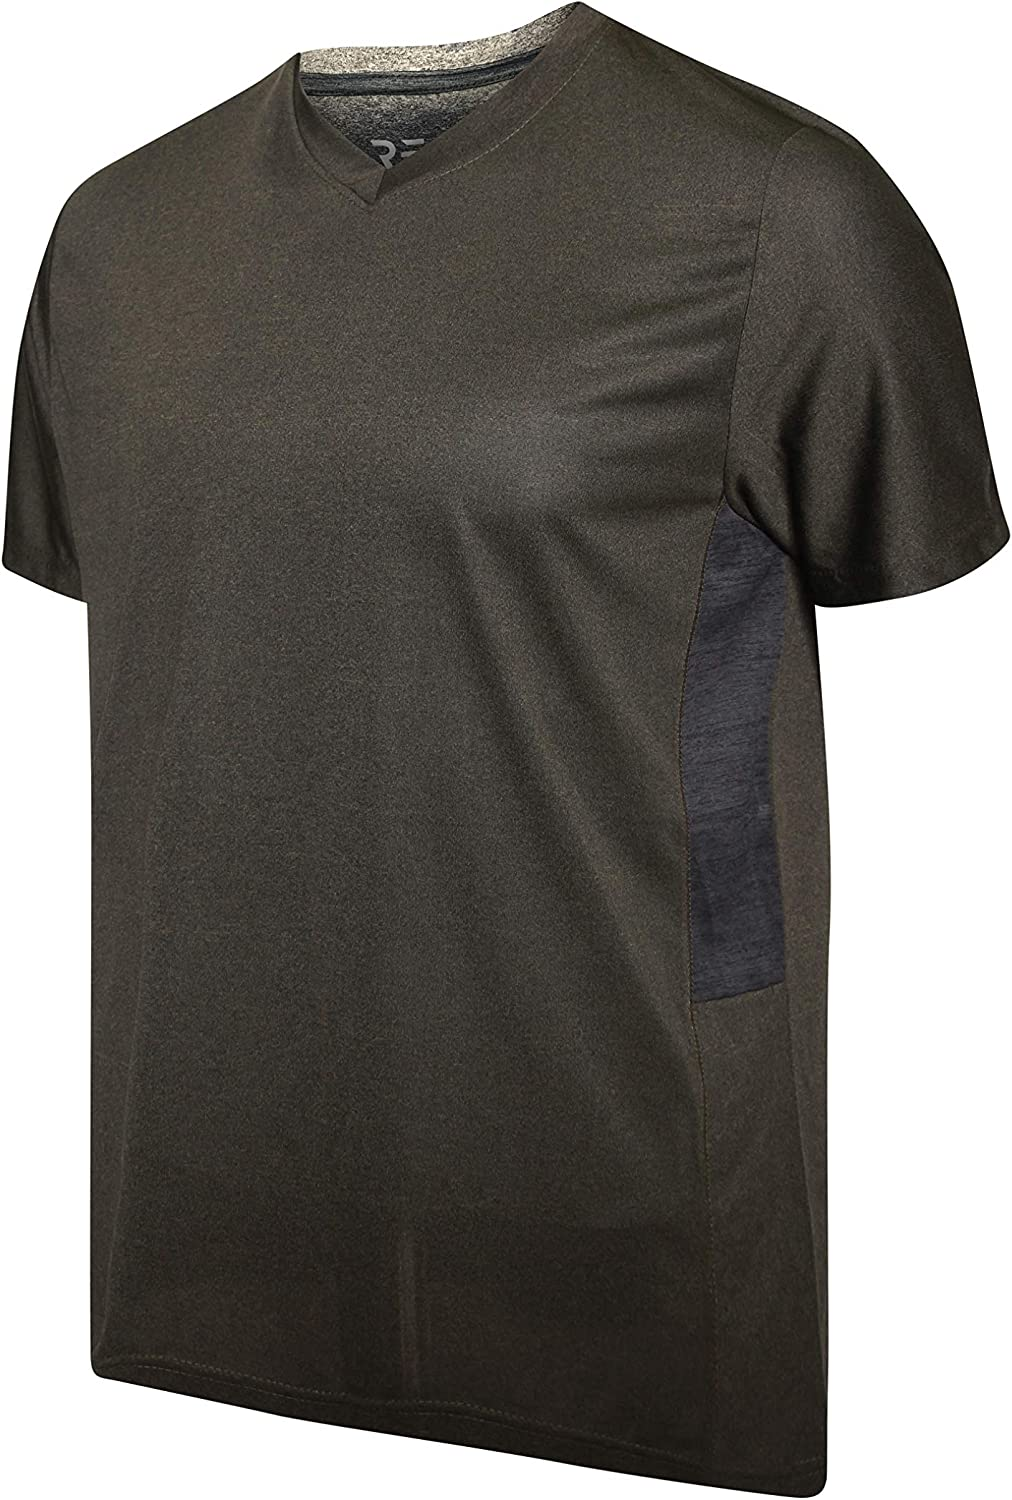 5 Pack Men/'s V-Neck Dry-Fit Moisture Wicking Active Athletic Tech Performance T-Shirt